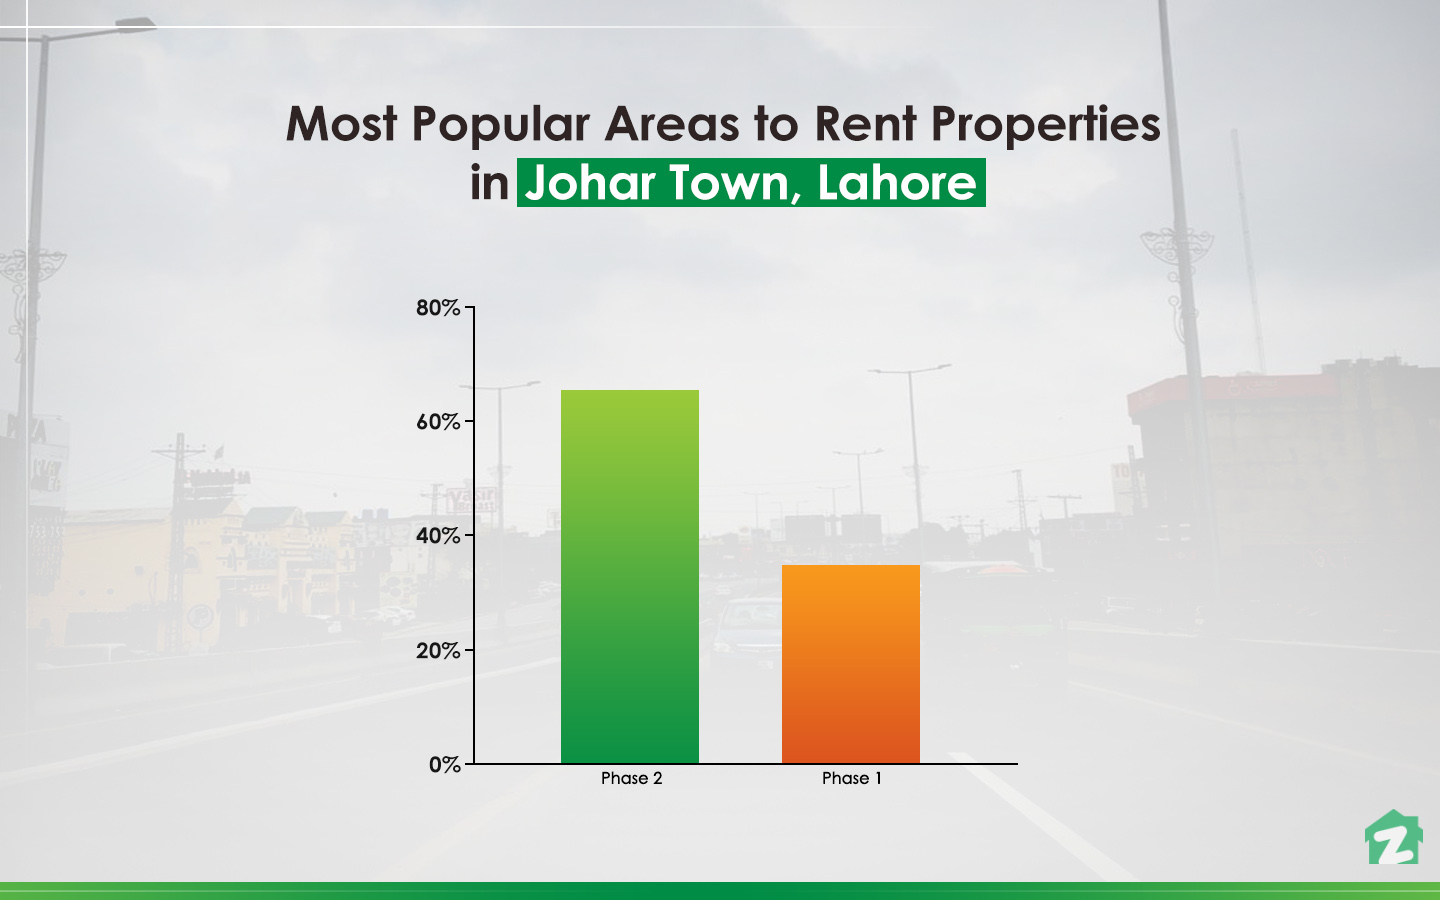 Phase 2 of Johar Town has higher rental trends.